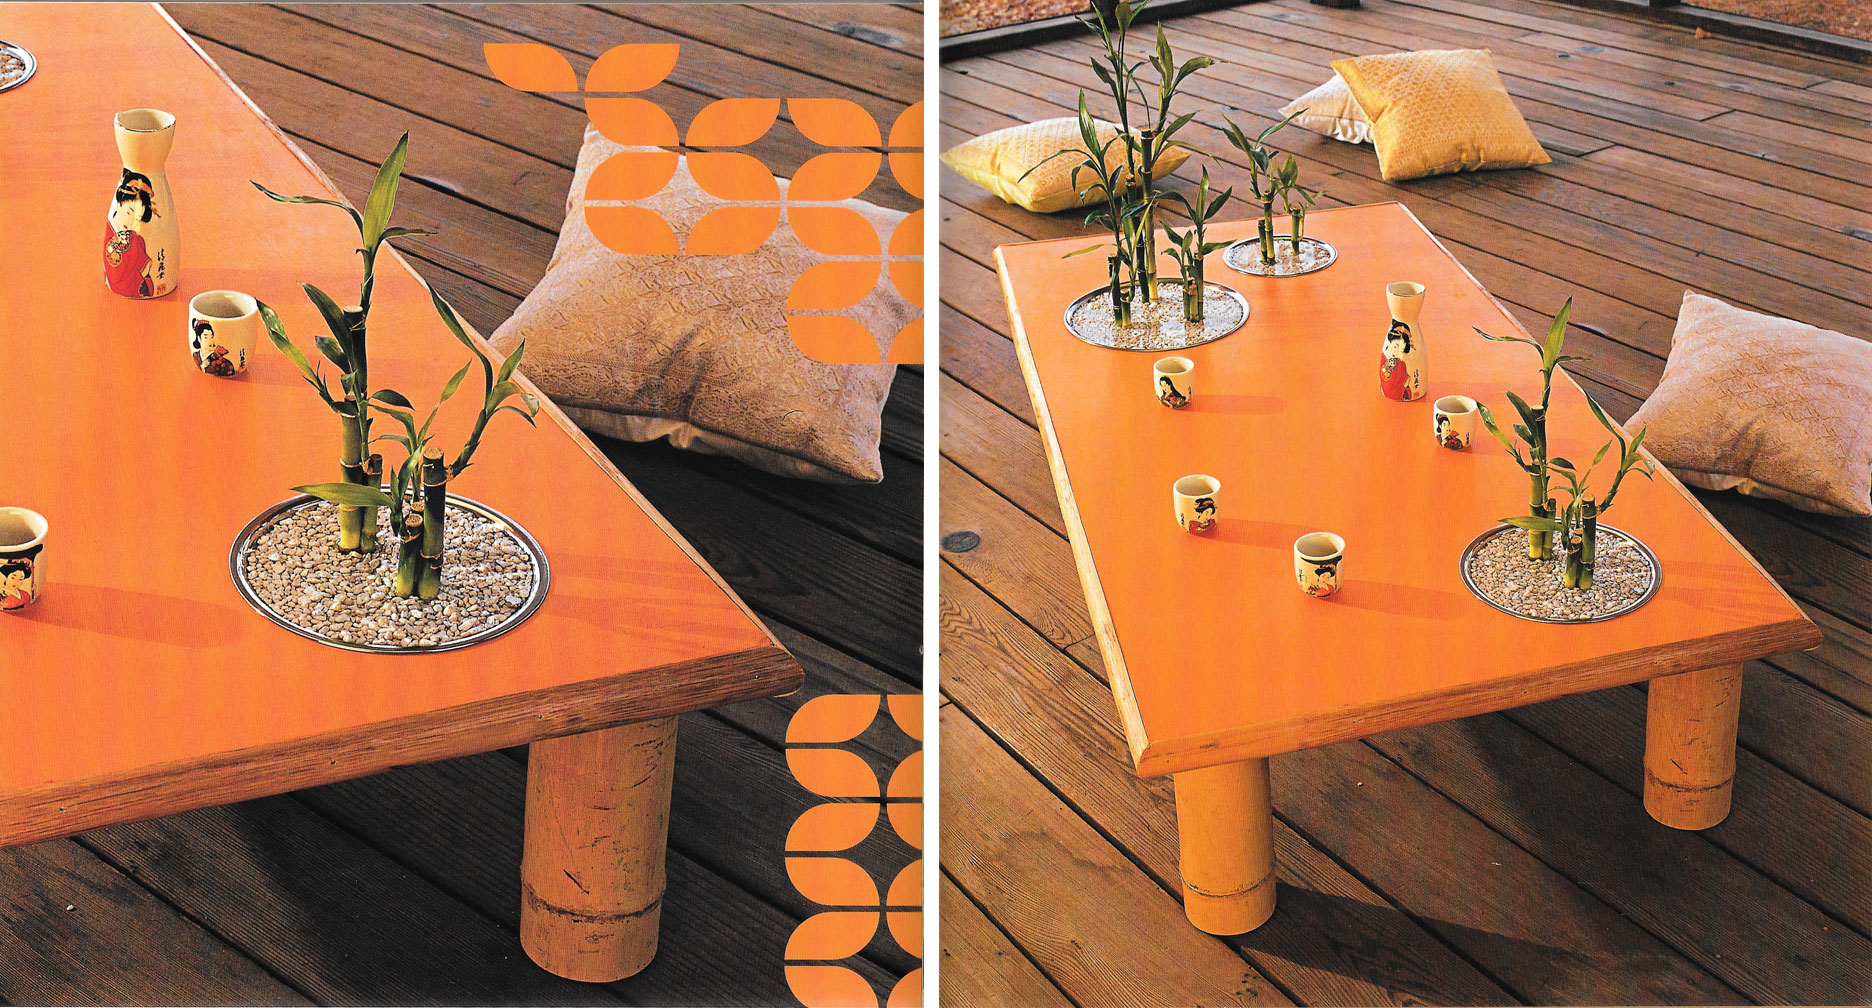 2. Matt_Maranian_Bamboo_Table.jpg